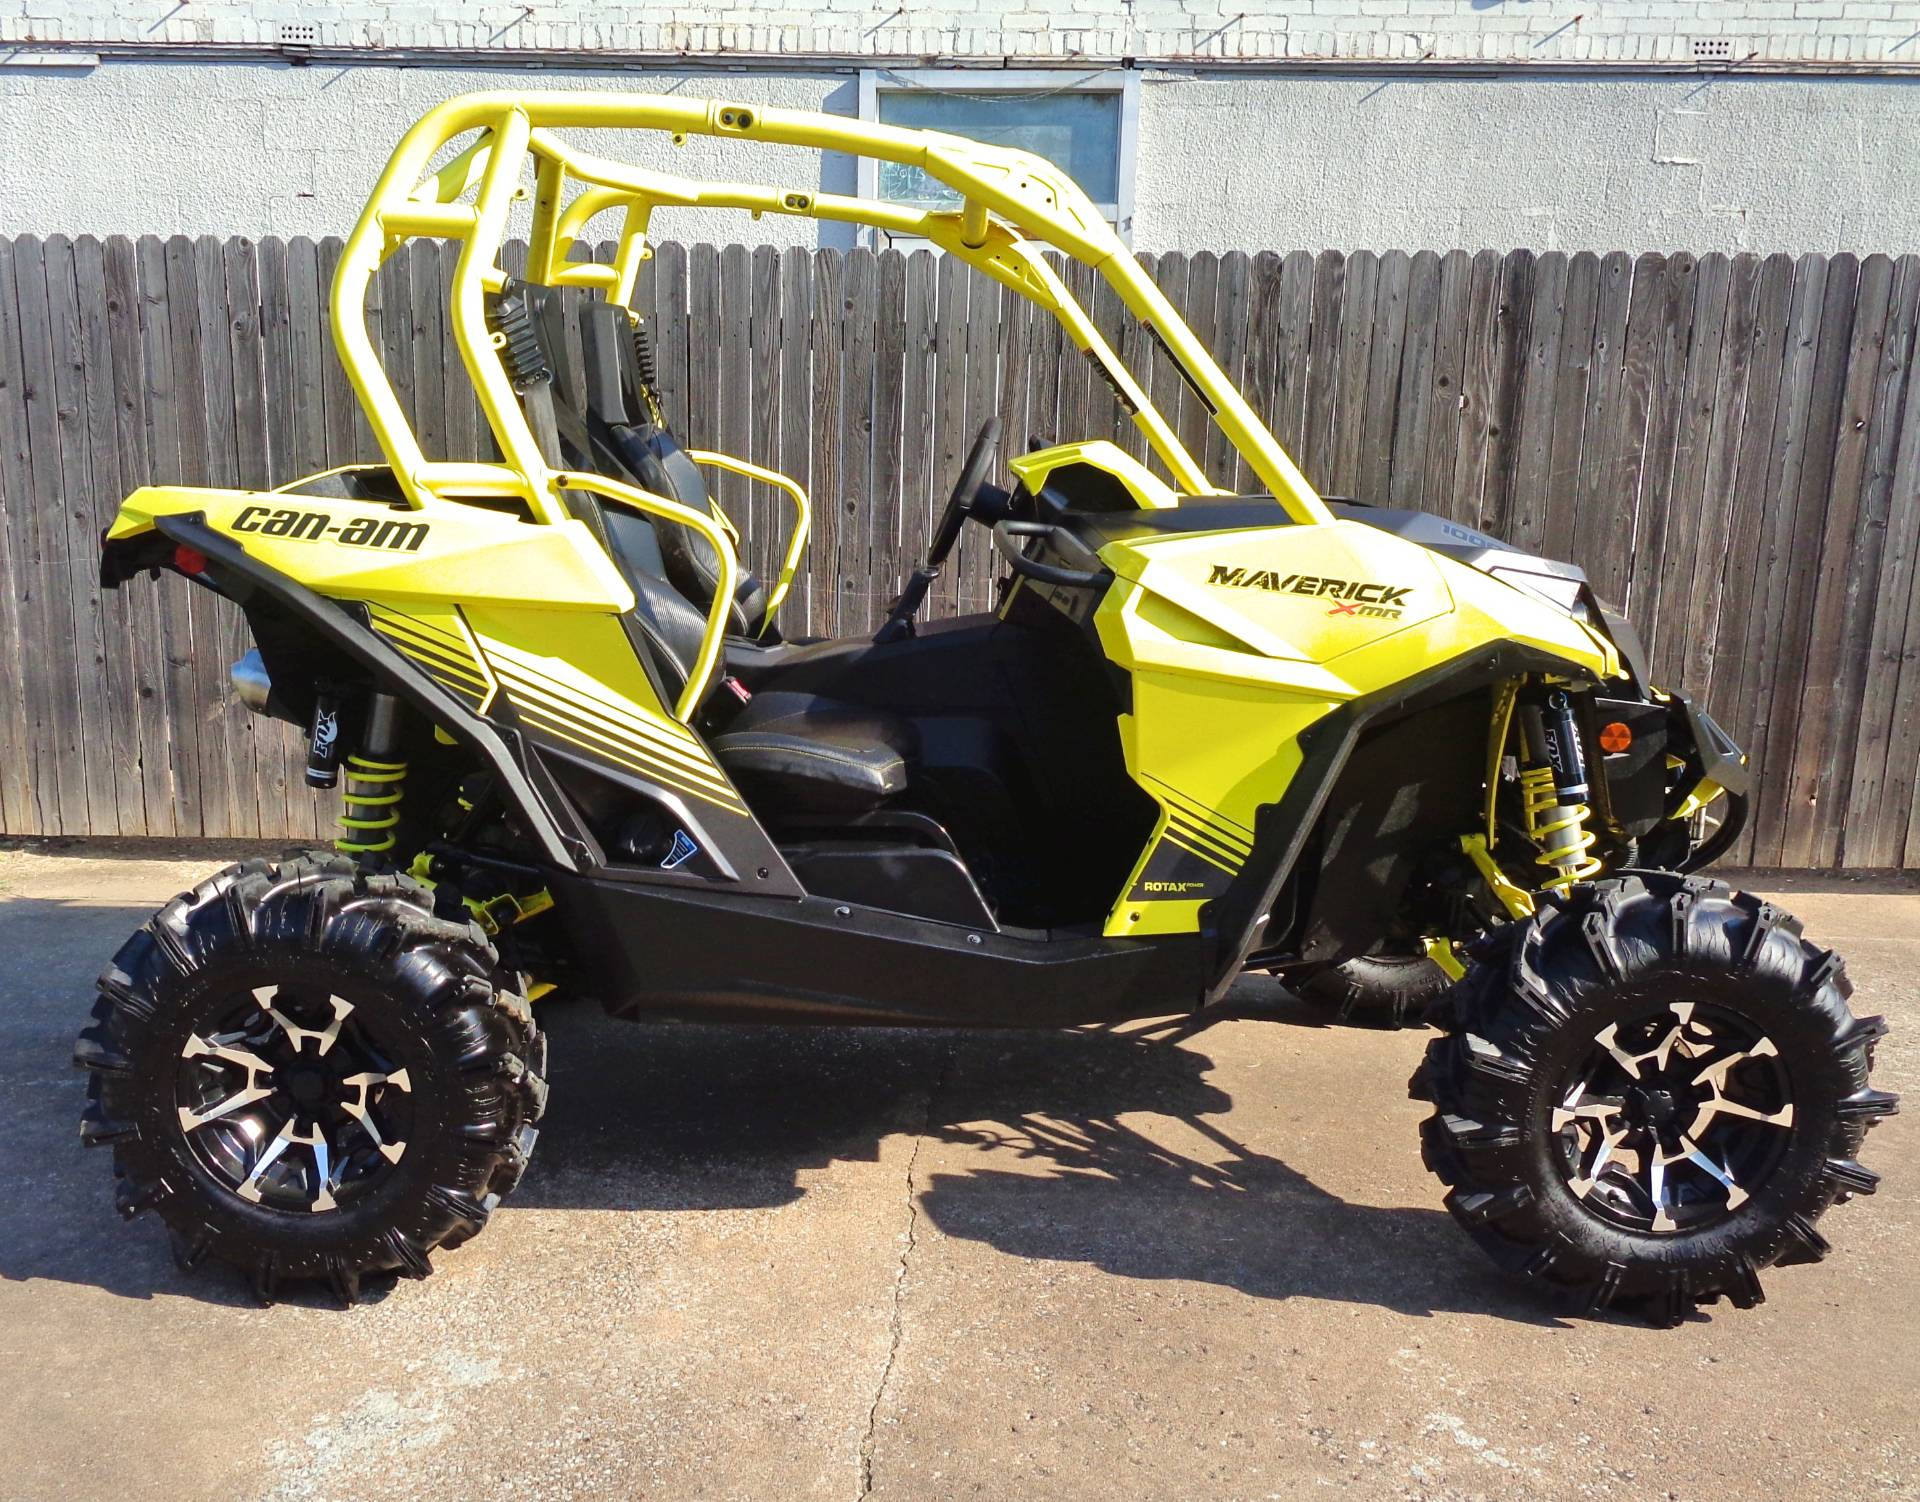 2018 Can-Am Maverick X MR in Tulsa, Oklahoma - Photo 1